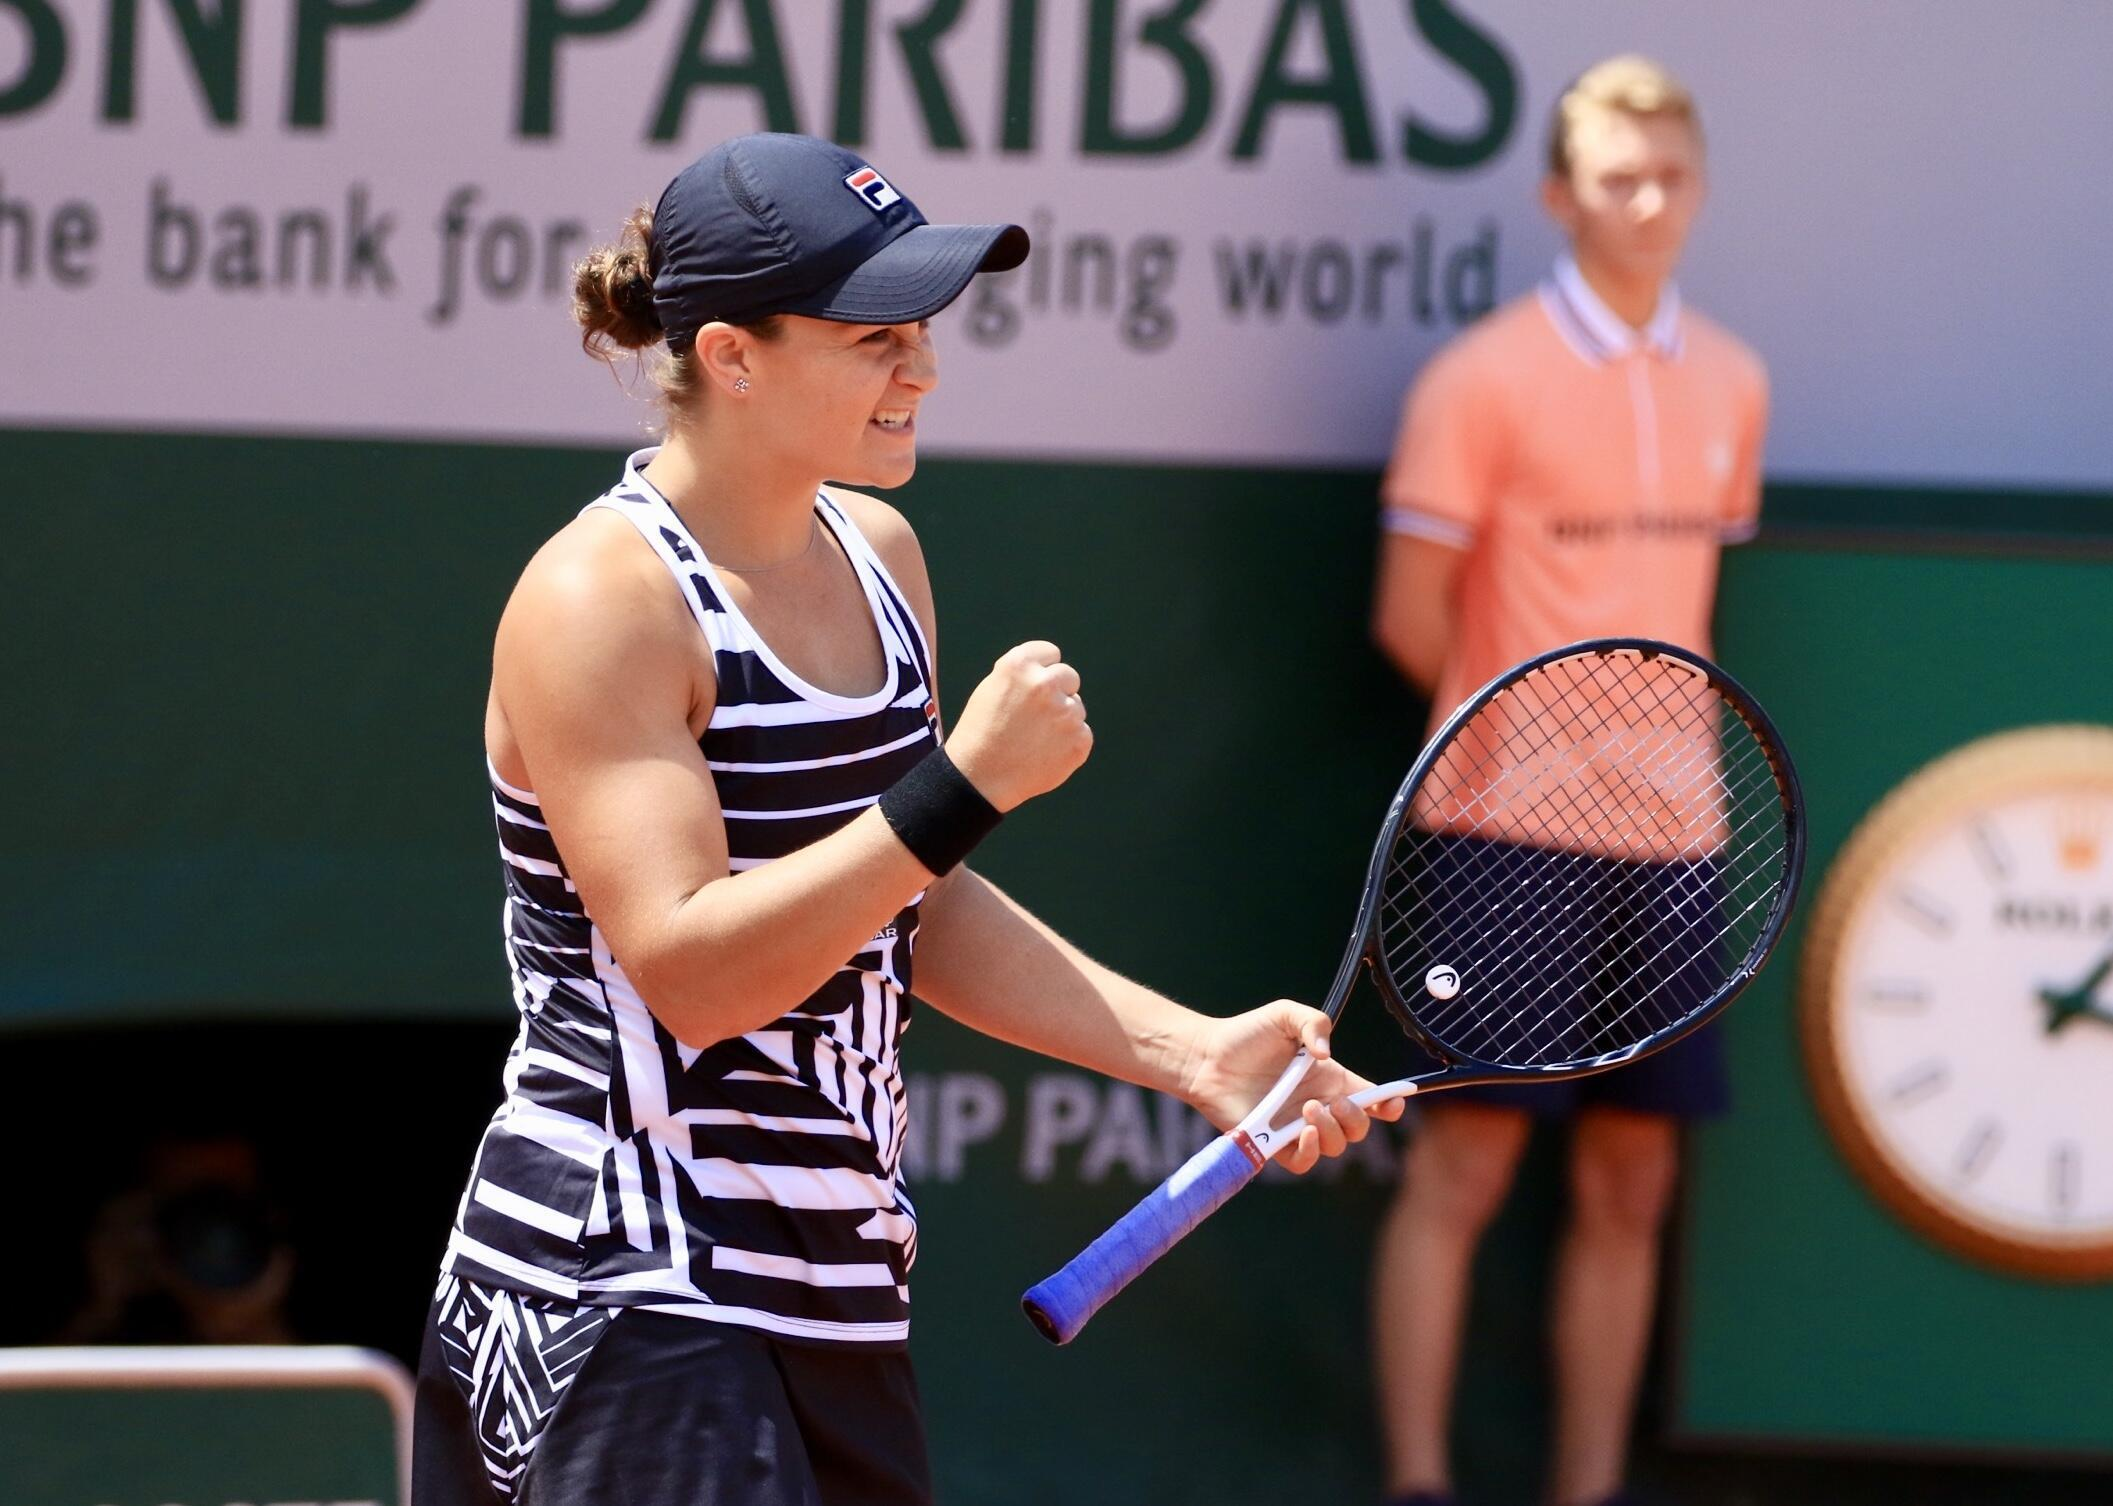 Ashleigh Barty reached her first Grand Slam final after beating the unseeded American Amanda Anisimova.